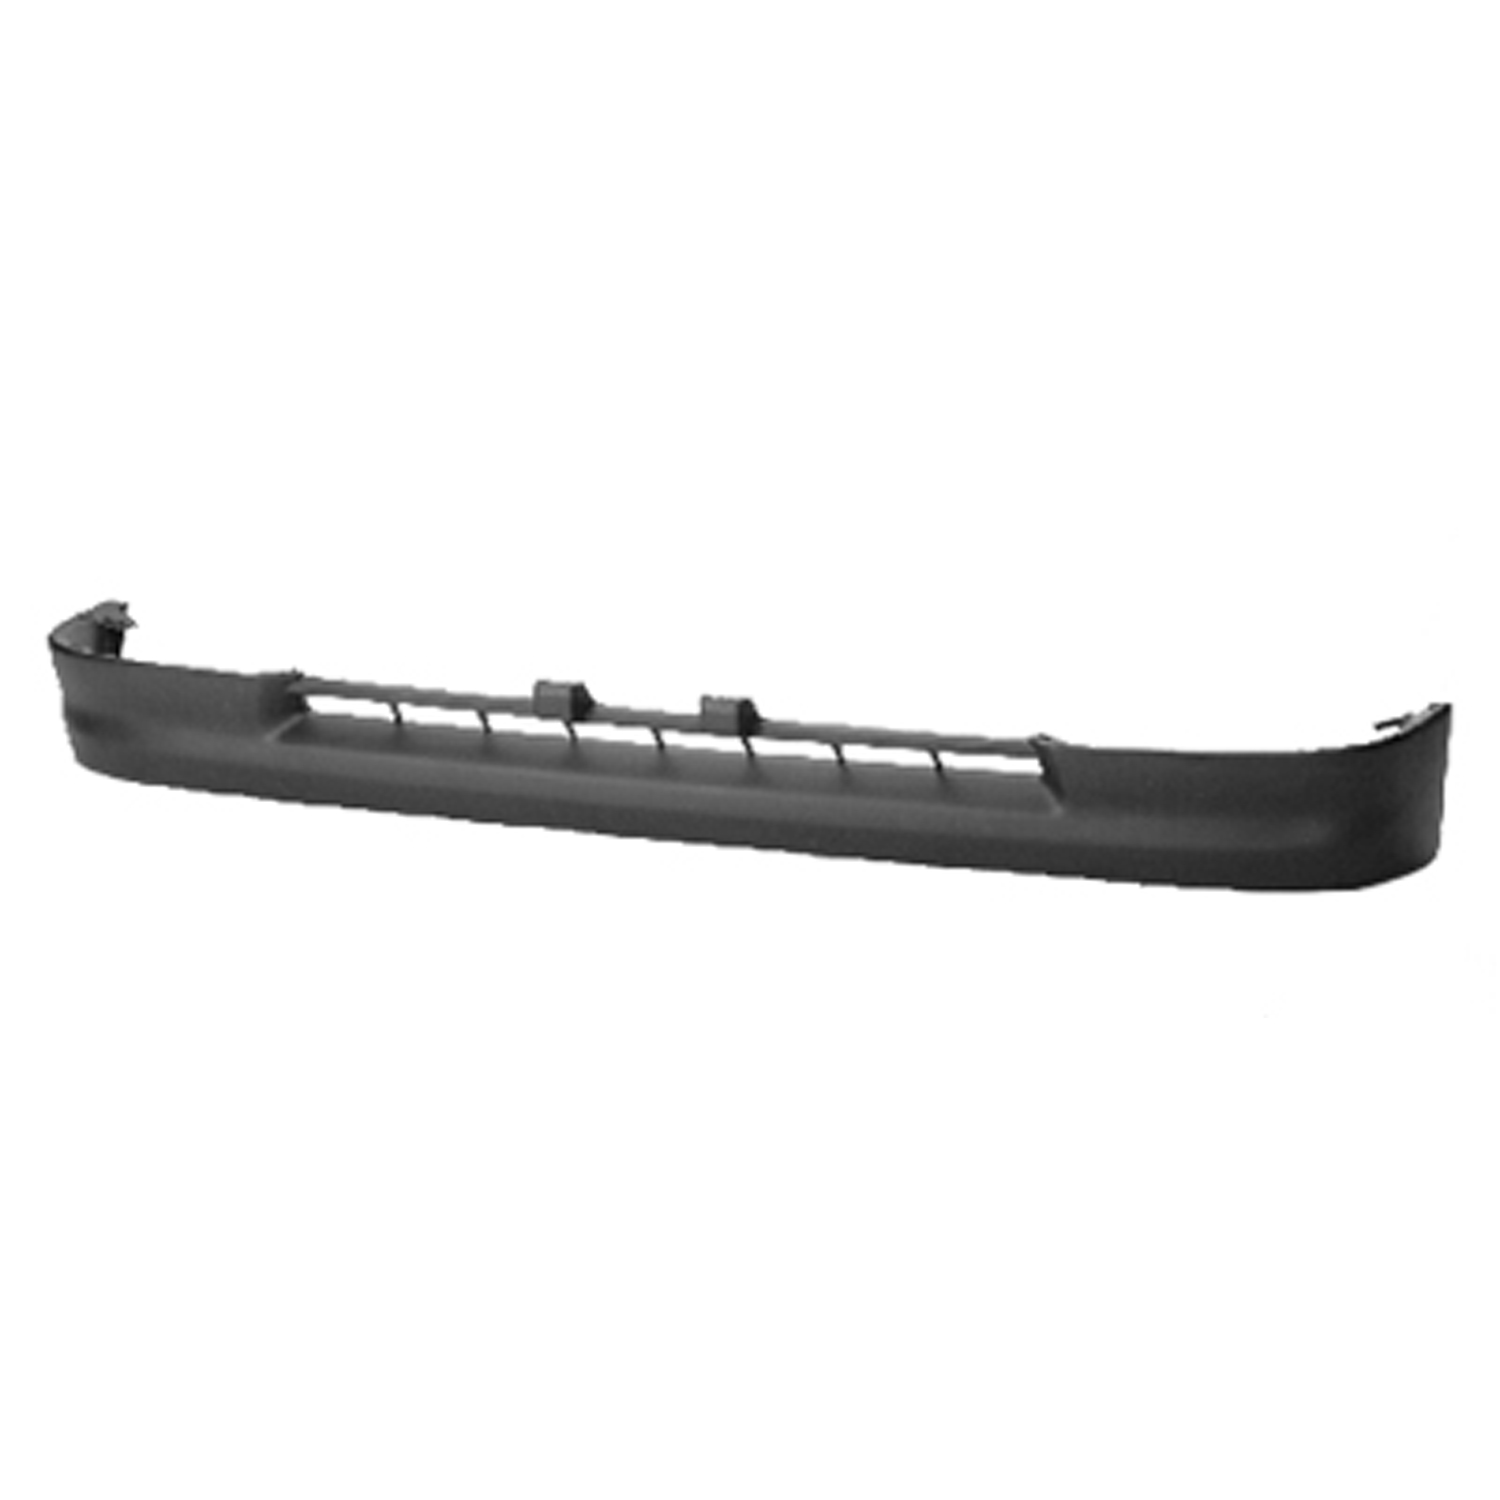 TO1095169 Front Lower Valance Panel Fits 1995-1997 Toyota Tacoma 2Wd Value